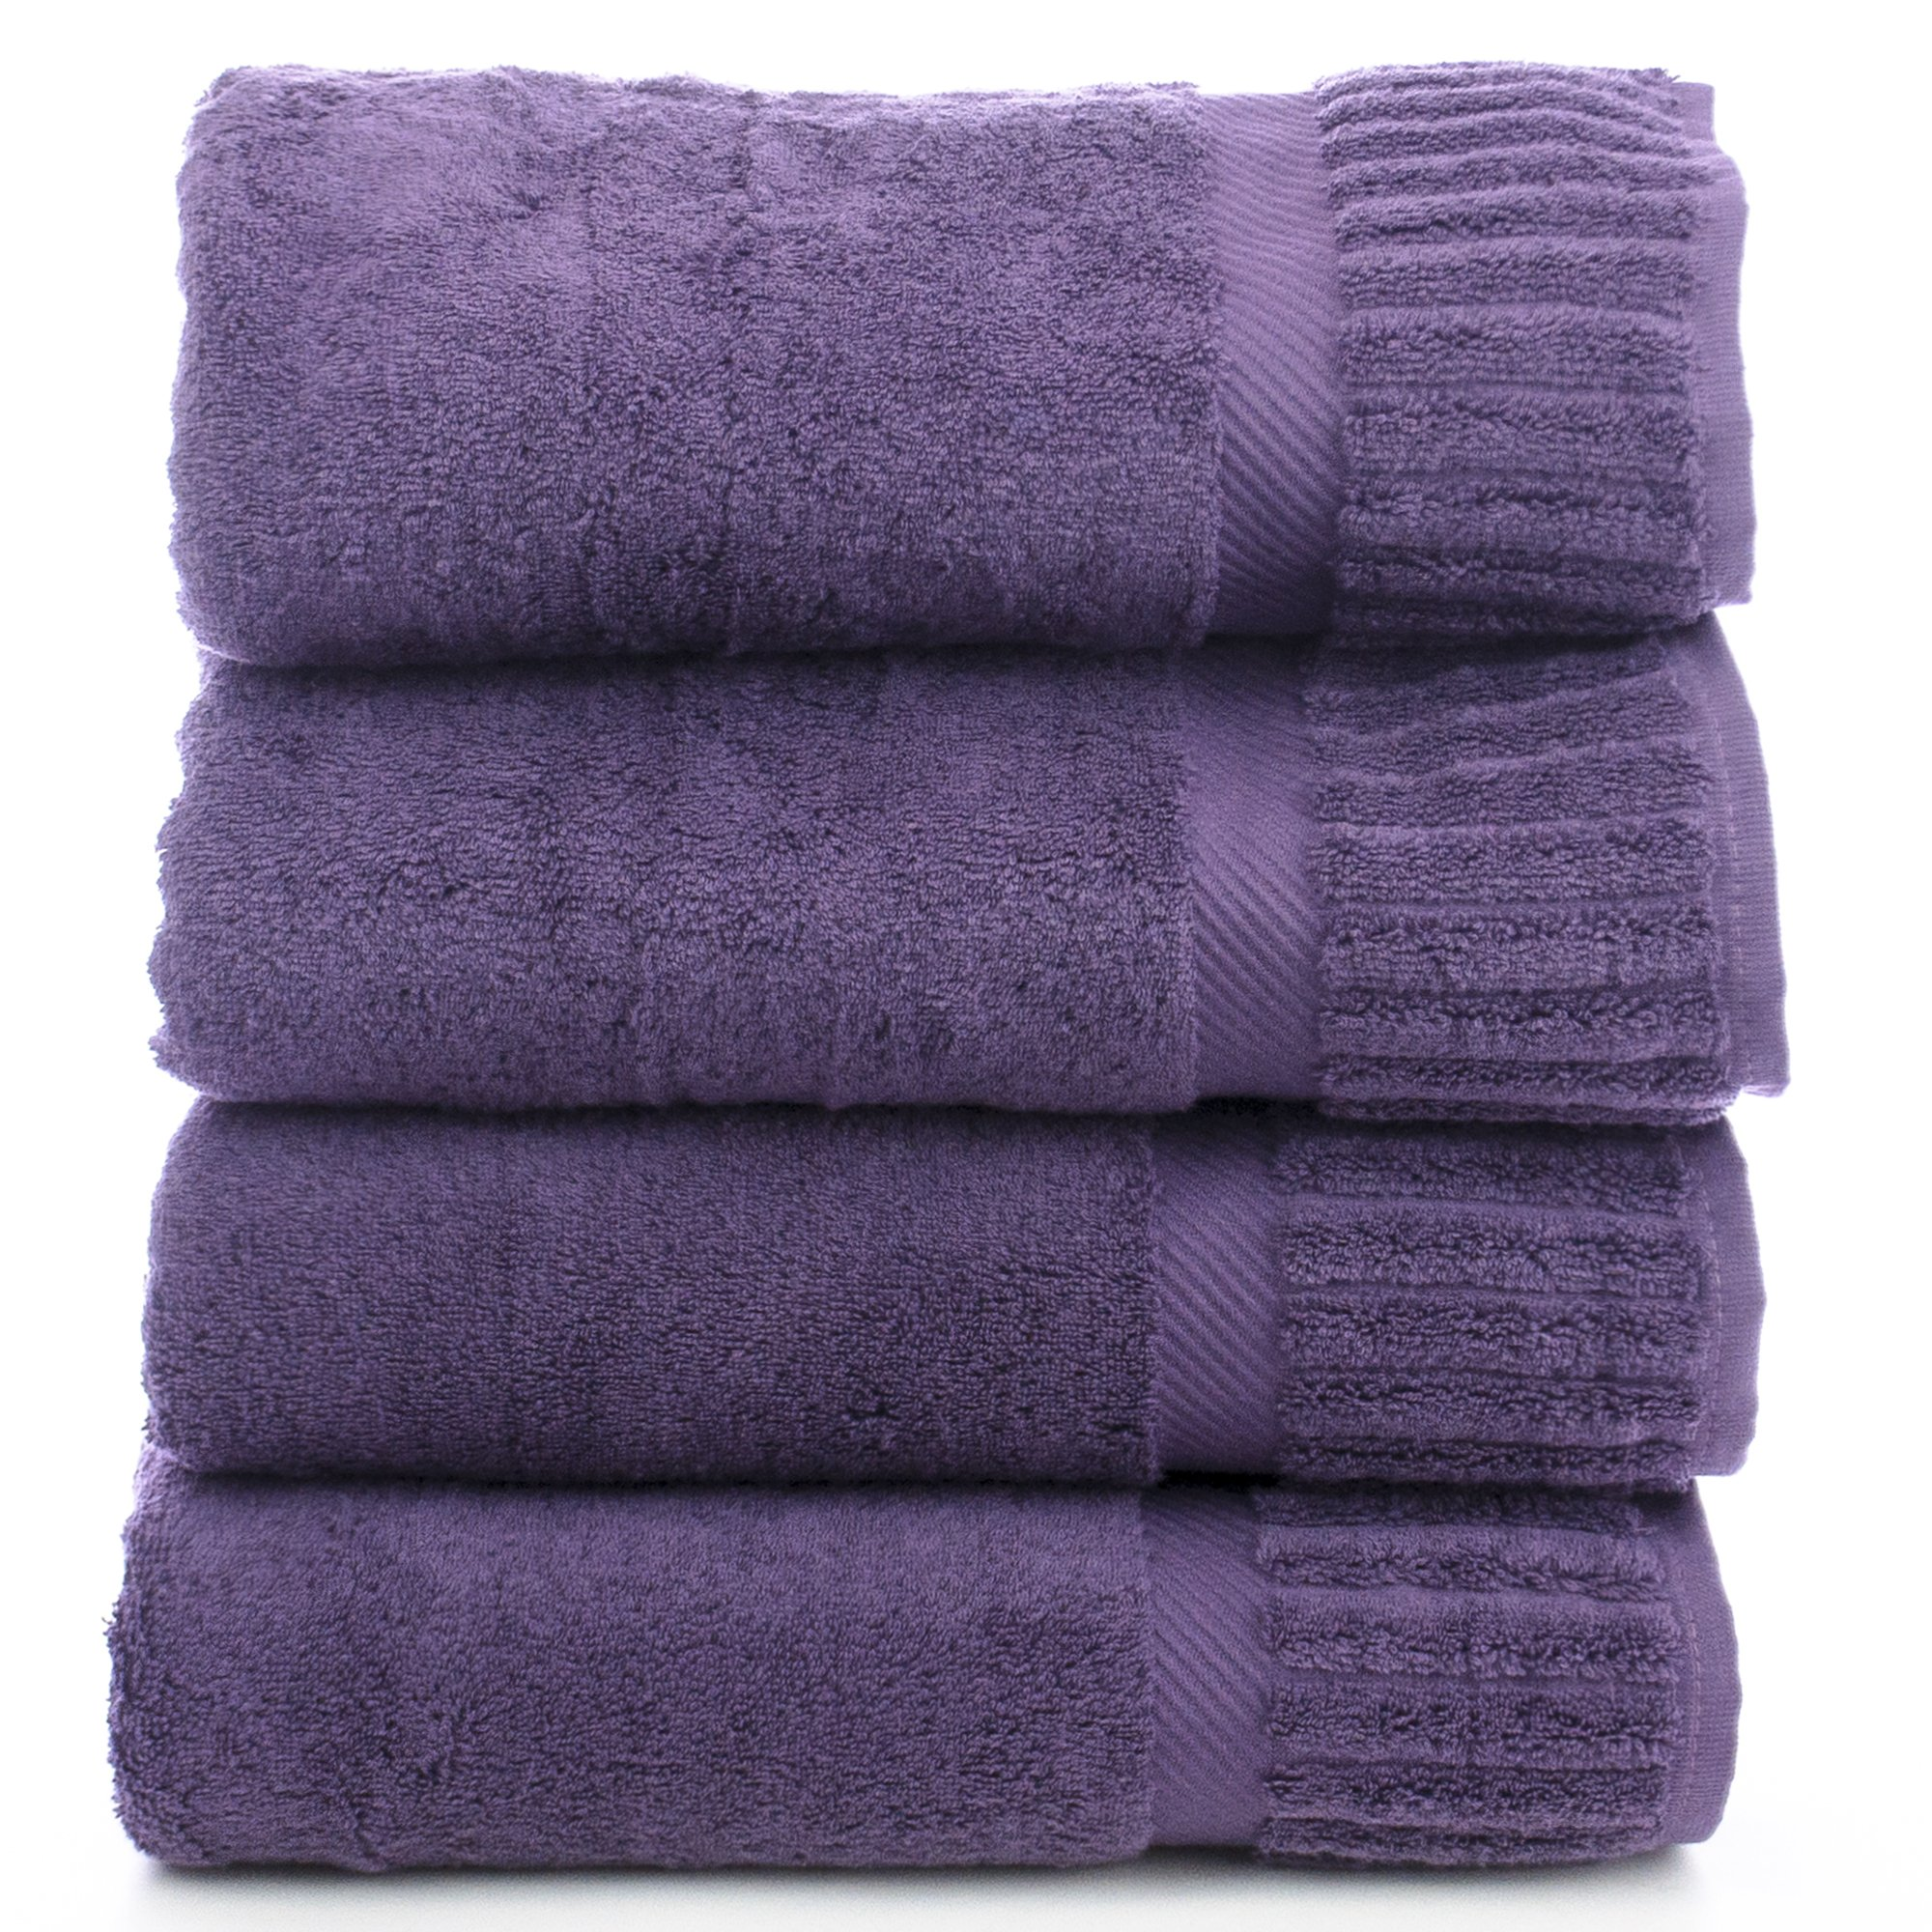 BC BARE COTTON Luxury Hotel & Spa Towel Turkish Cotton Bath Towels - Plum - Piano - Set of 4